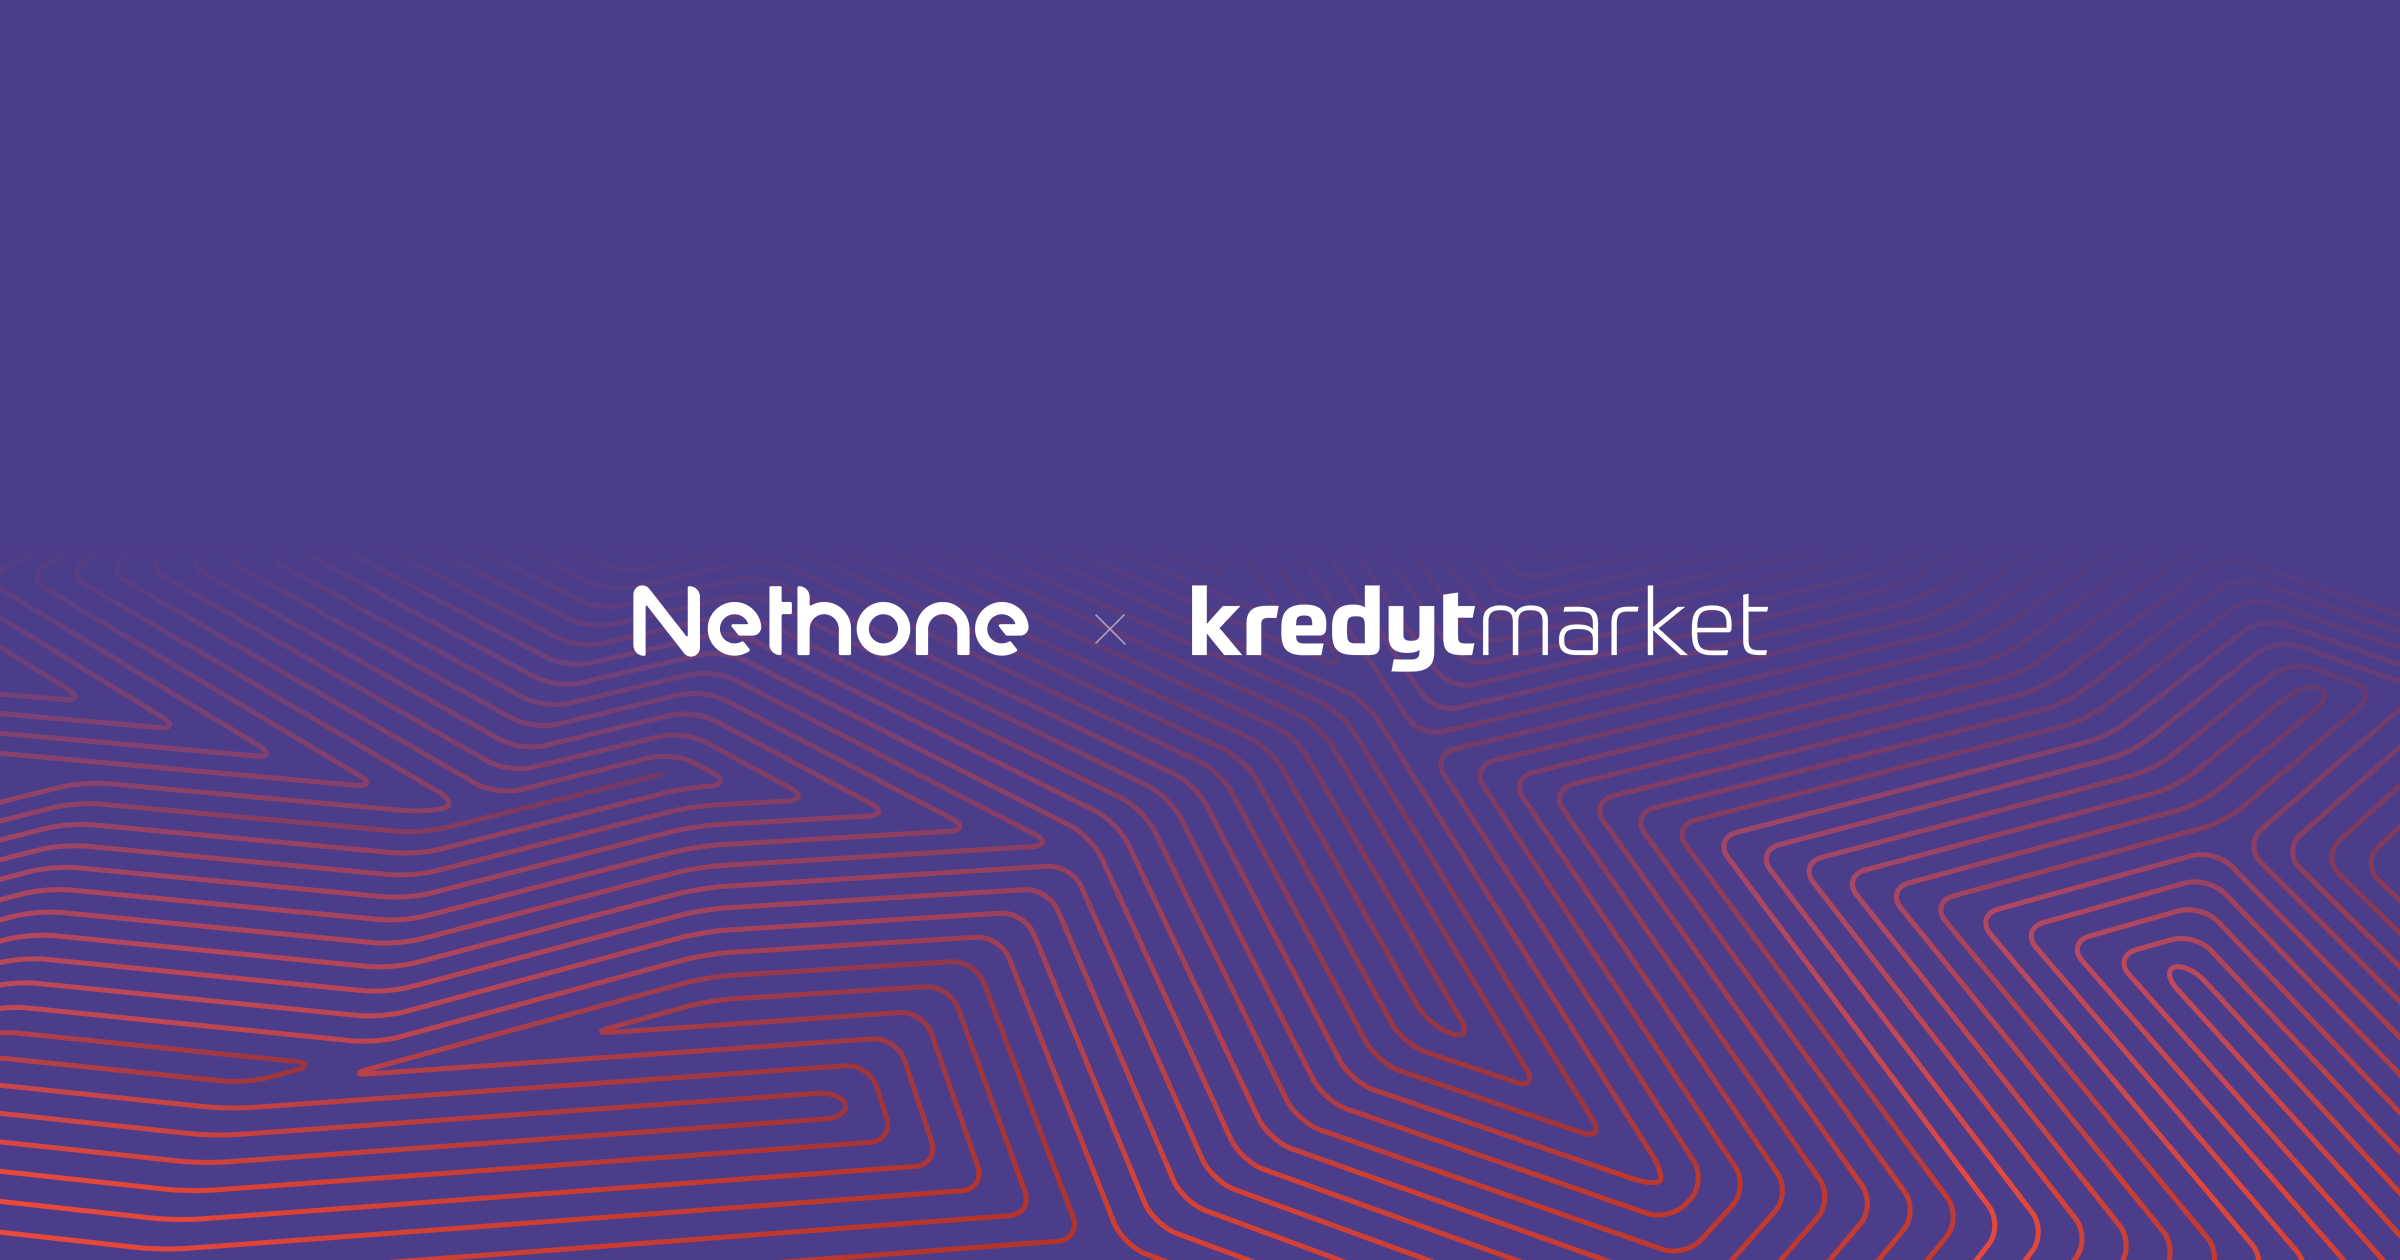 Kredytmarket has partnered up with Nethone